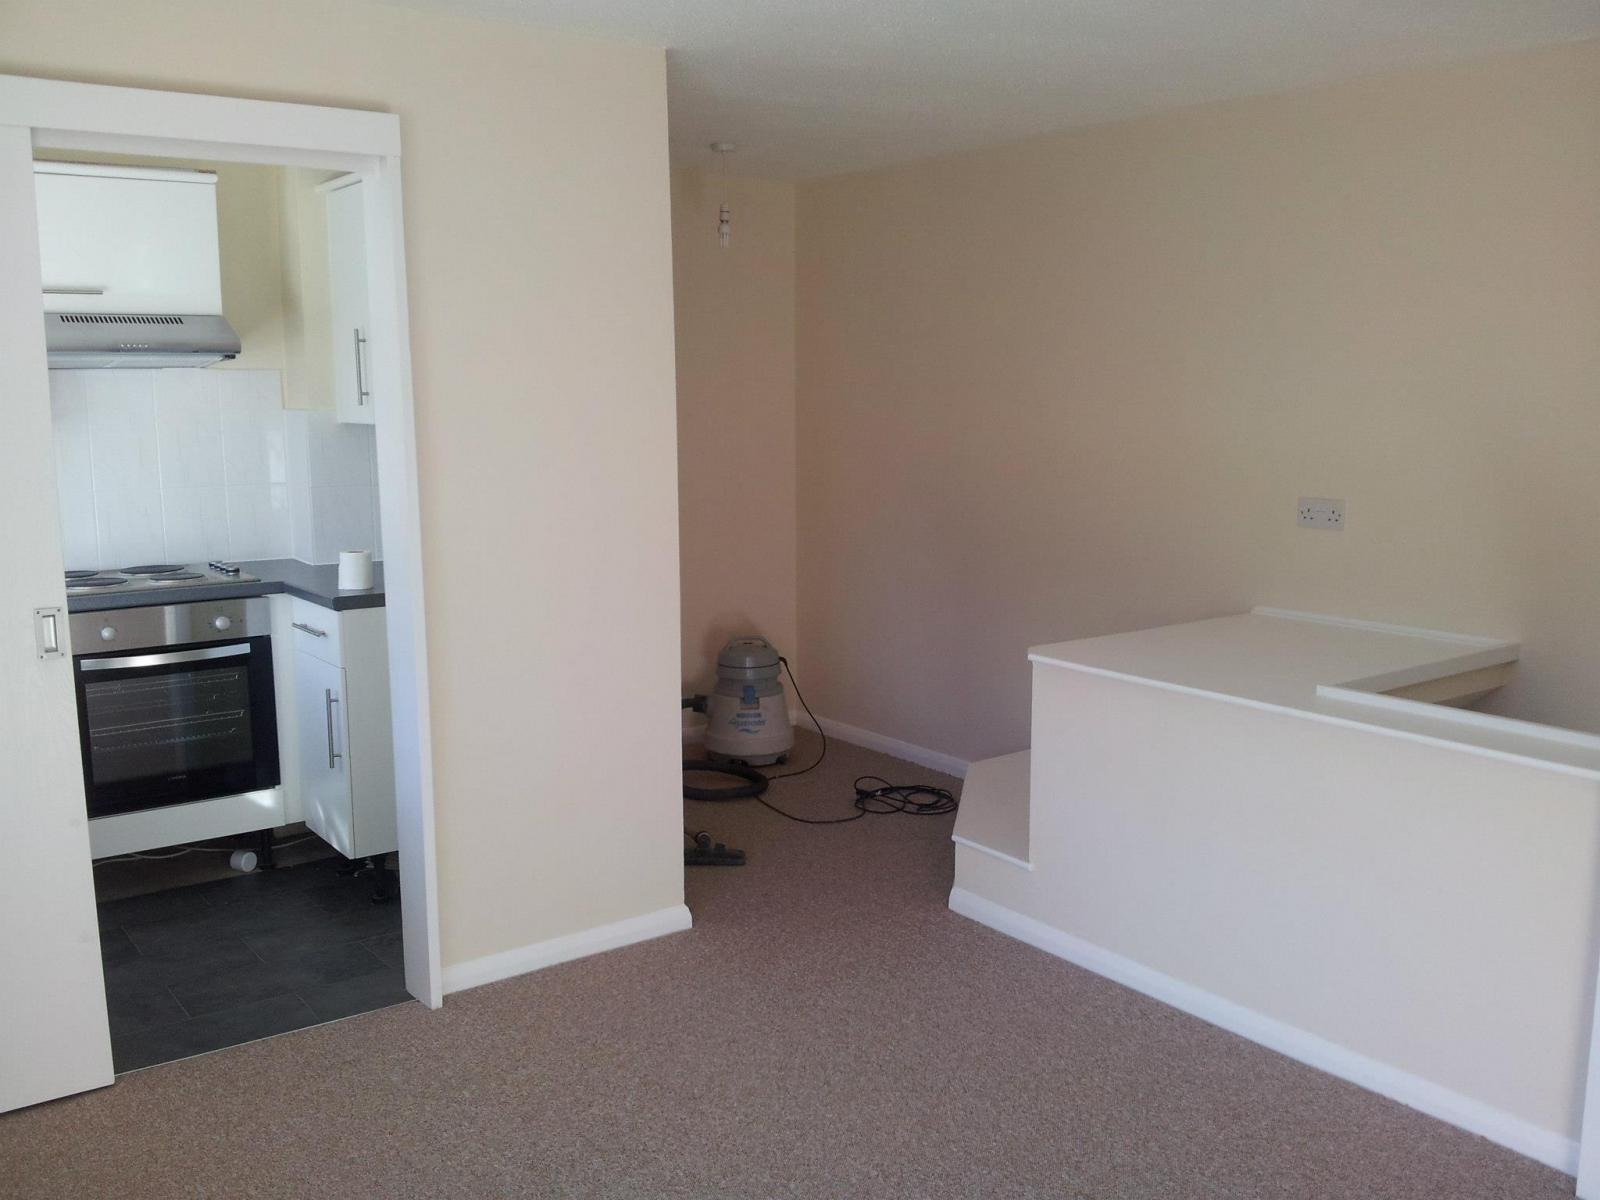 One-bedroom-house-in-Aldershot-6